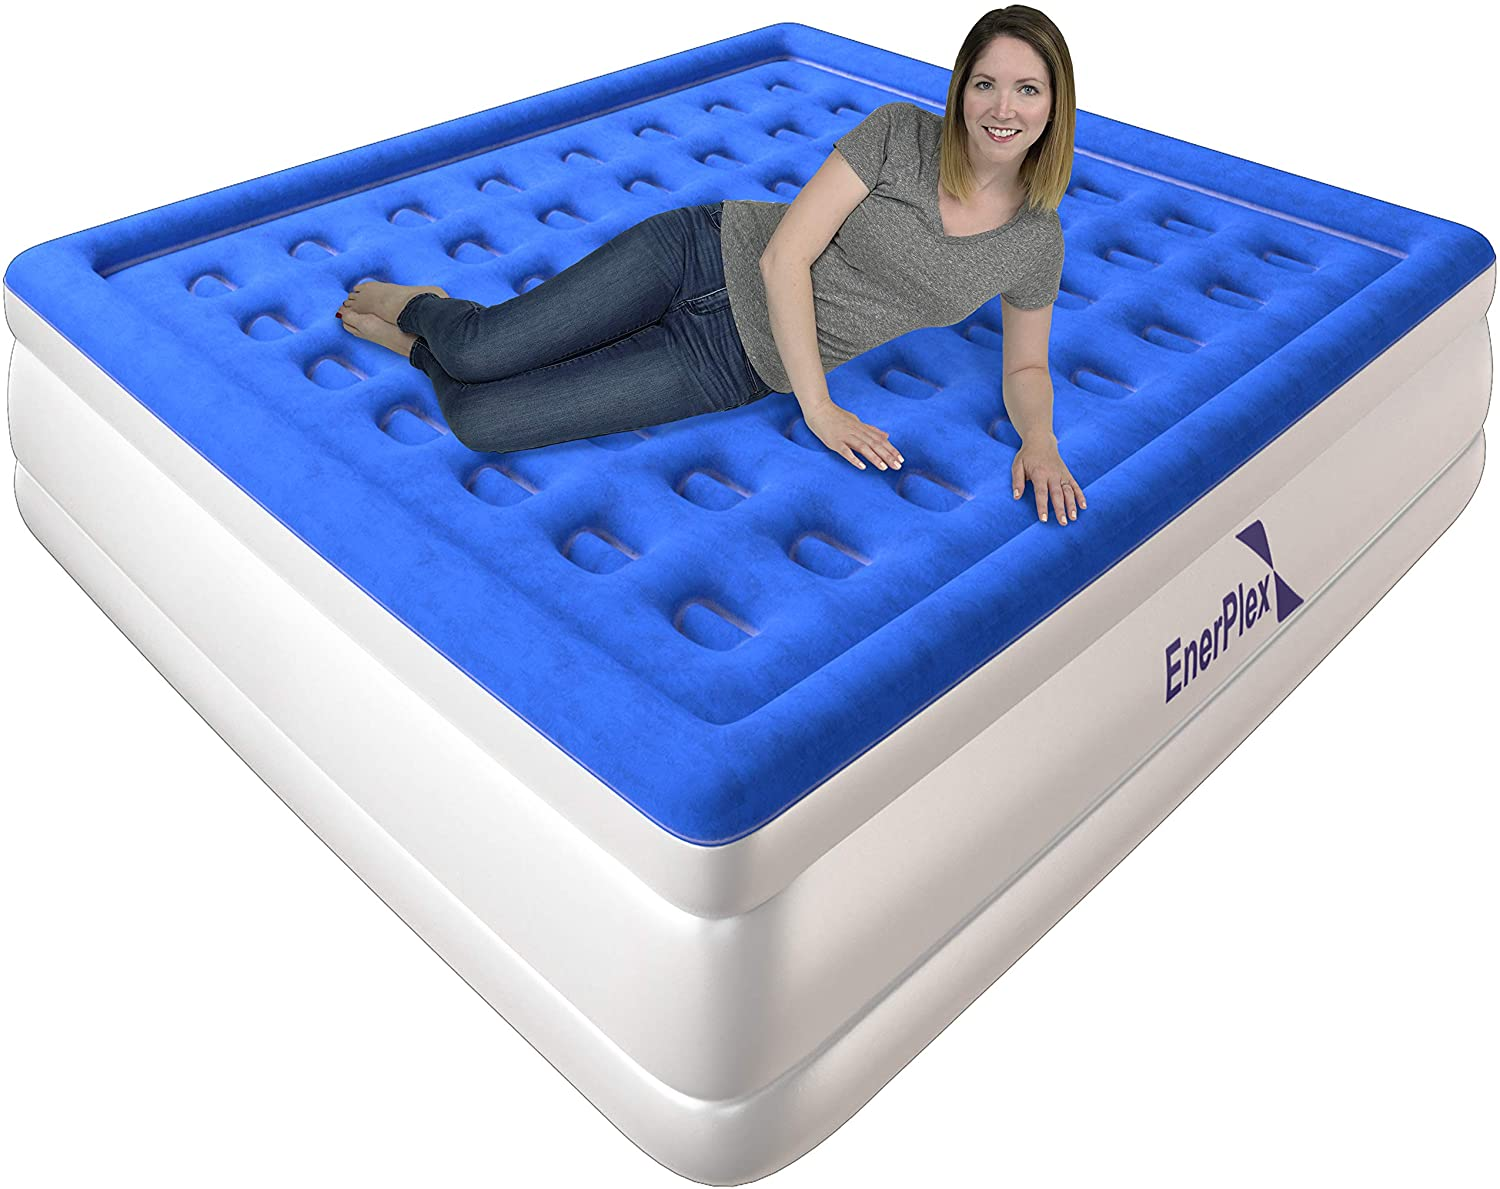 Best Choice RAISED Inflatable Bed with Fitted Sheet and Air Mattress KING size